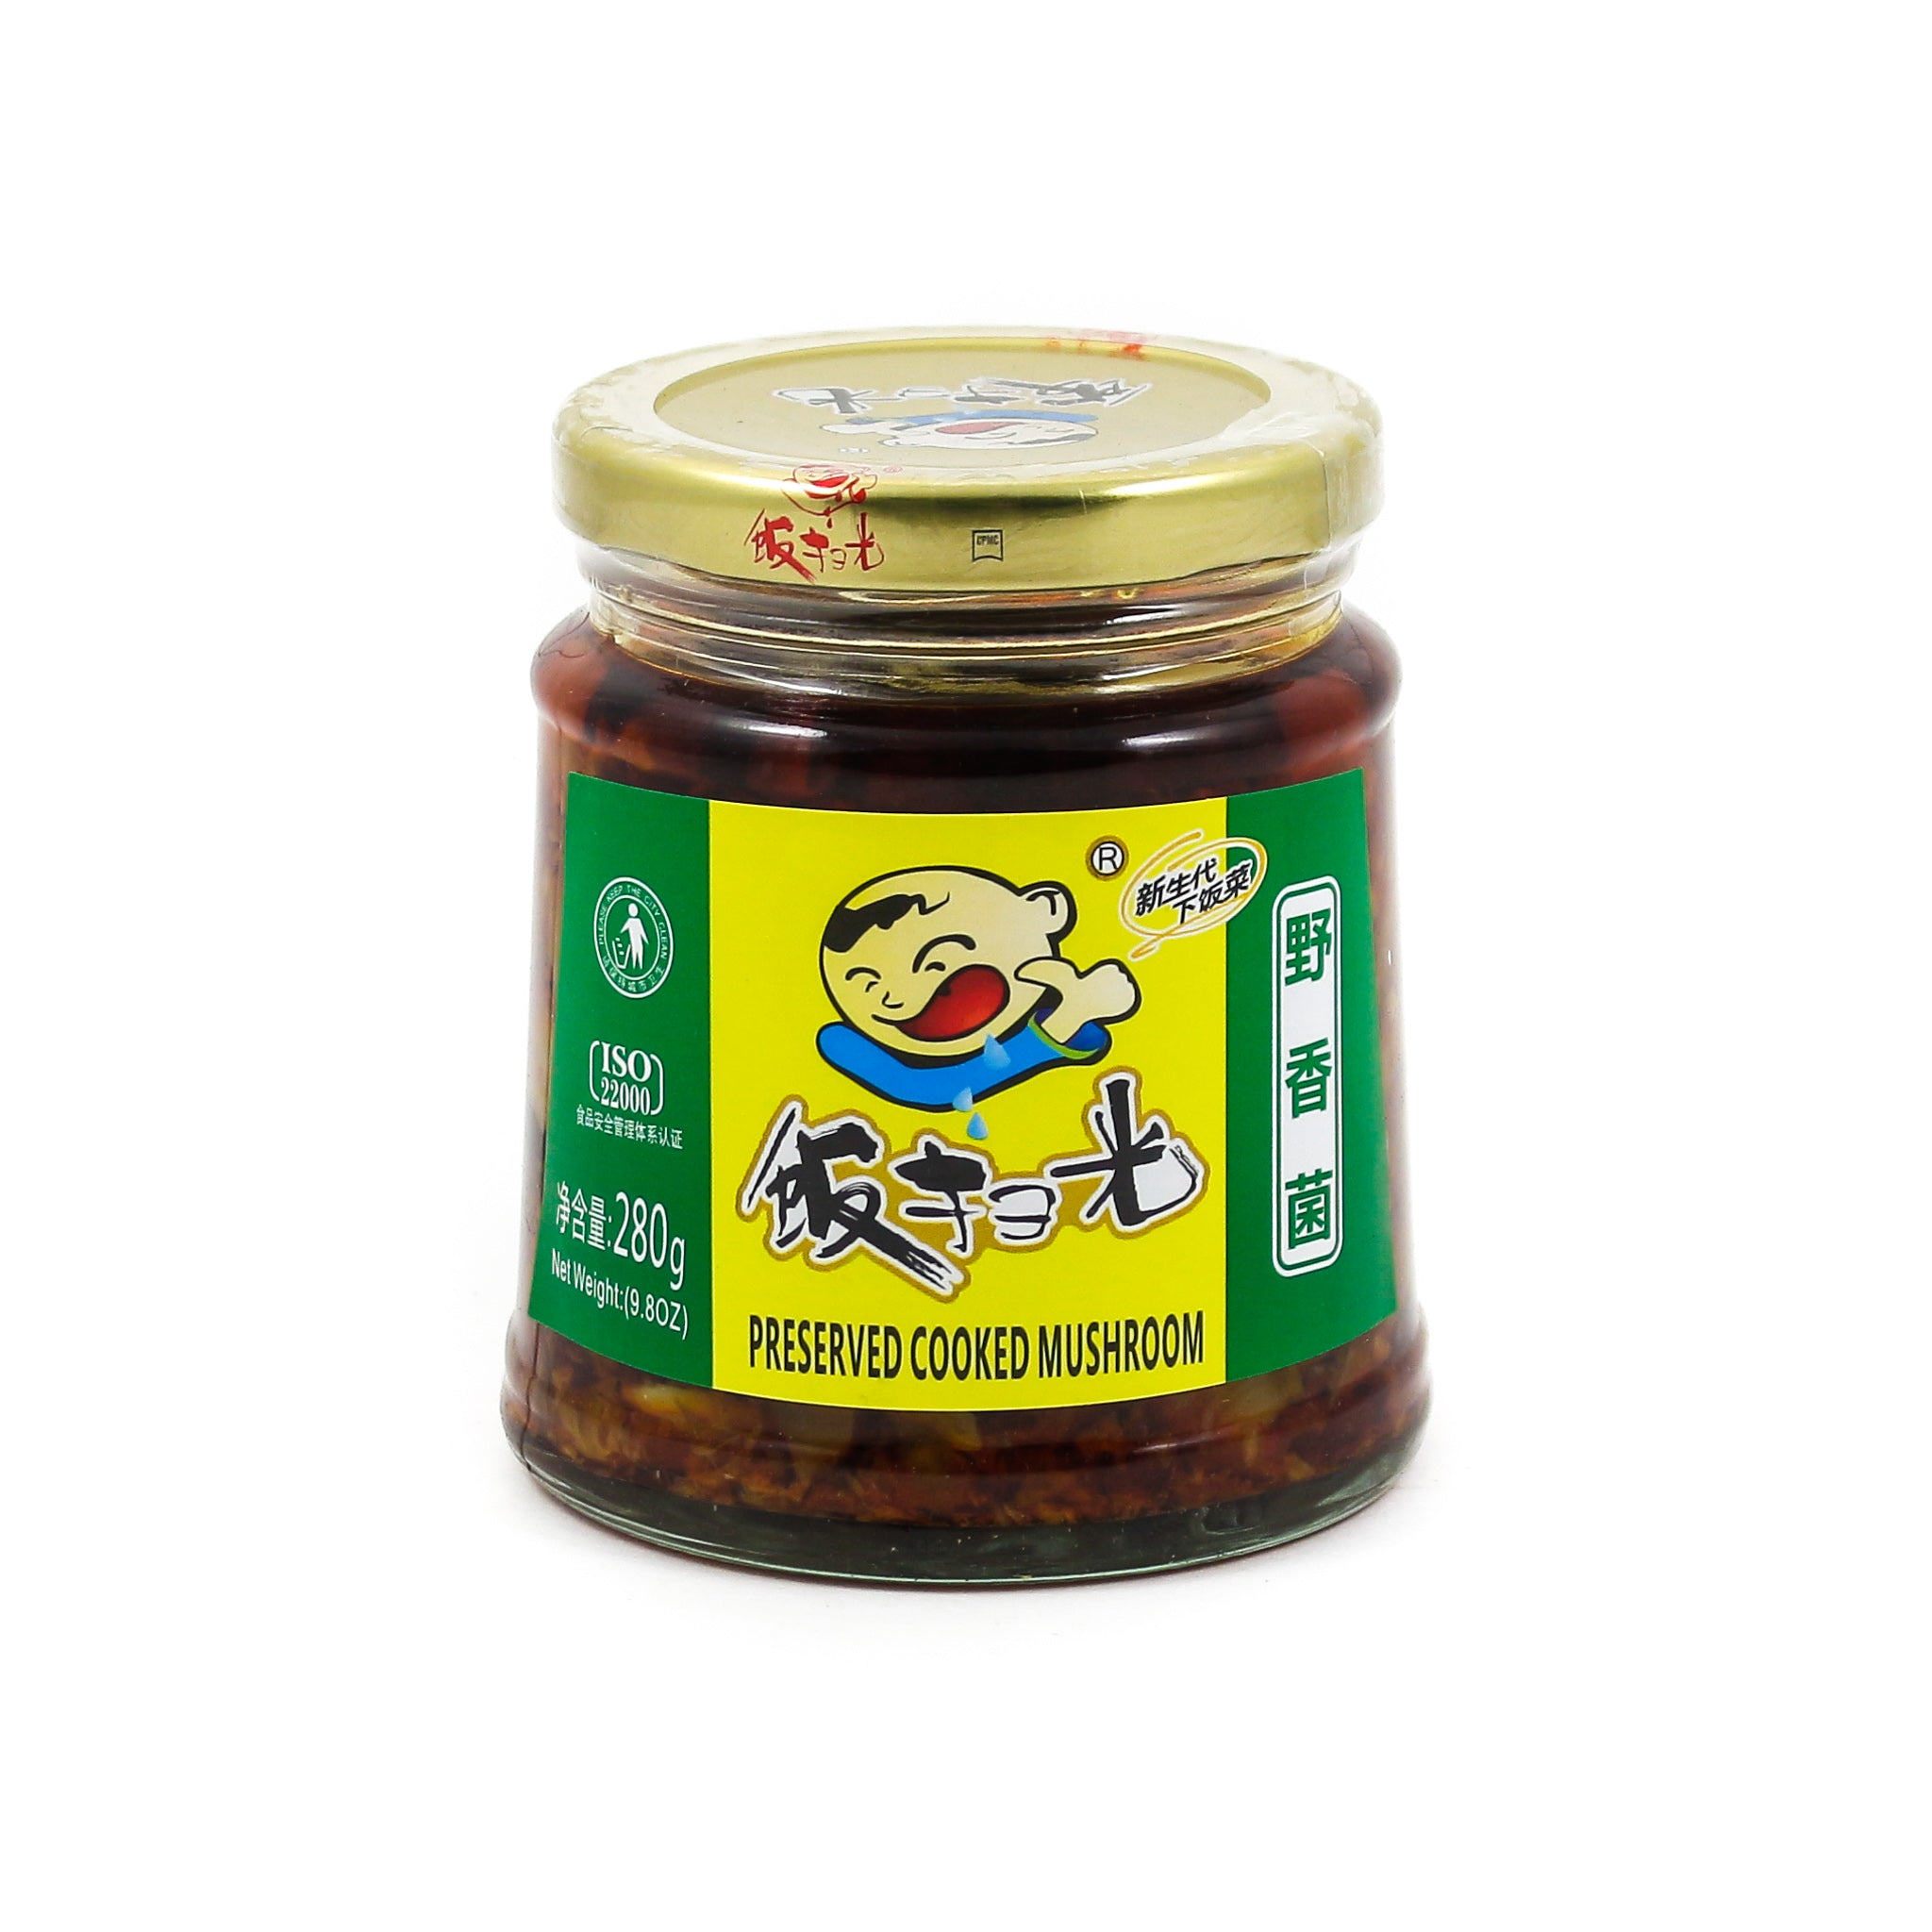 FSG Sichuan Preserved Cooked Fungus 280g Ingredients Sauces & Condiments Asian Sauces & Condiments Chinese Food